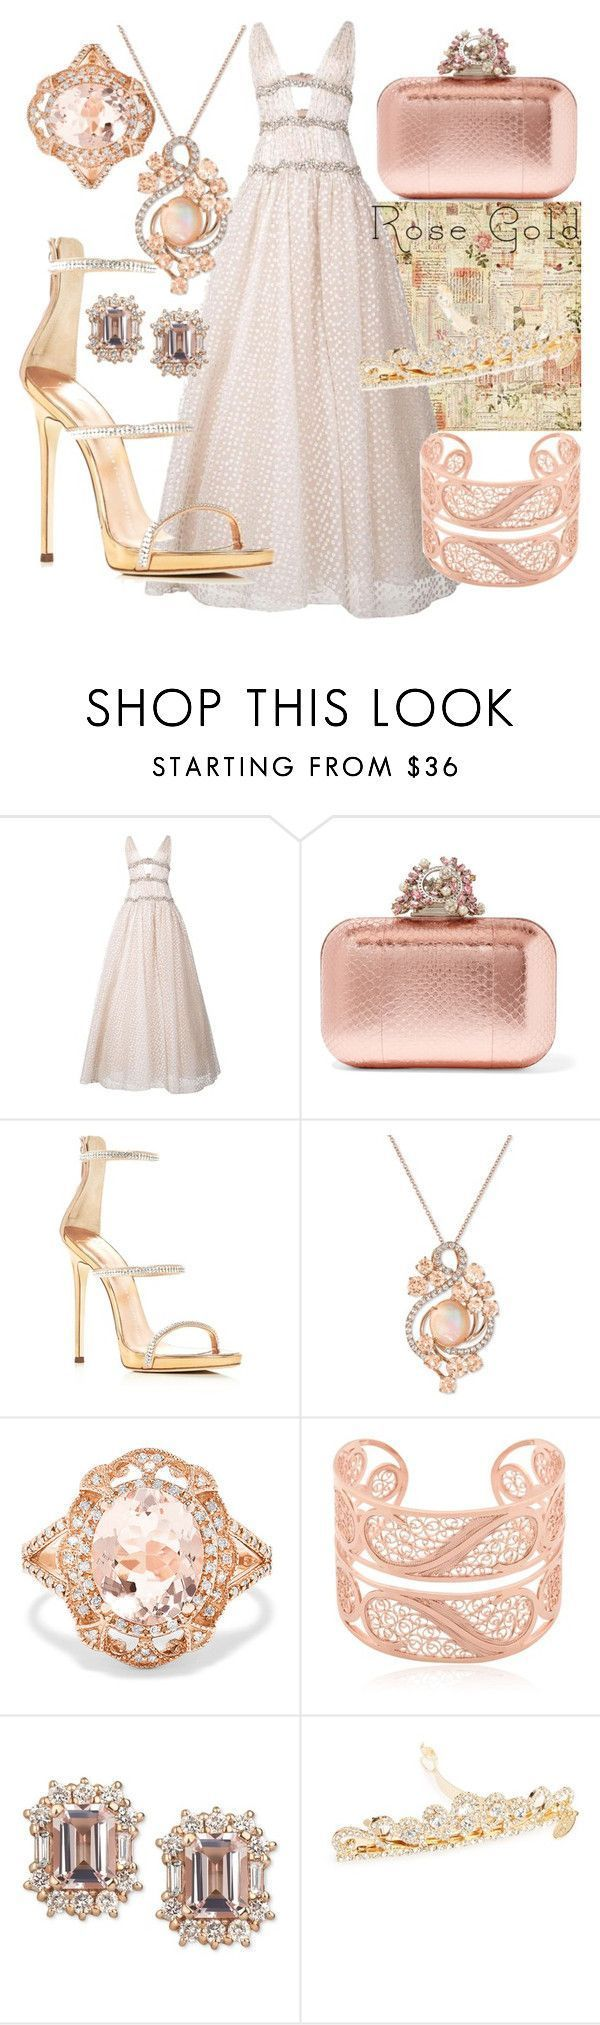 """Princess Rose"" by hanisi ❤ liked on Polyvore featuring Carolina Herrera, Jimmy Choo, Giuseppe Zanotti, LE VIAN, Effy Jewelry, Arabel Lebrusan and Tasha #carolinaherrera #carolinaherreracanada #carolinaherreraperfume #perfumes #perfumes #canada"